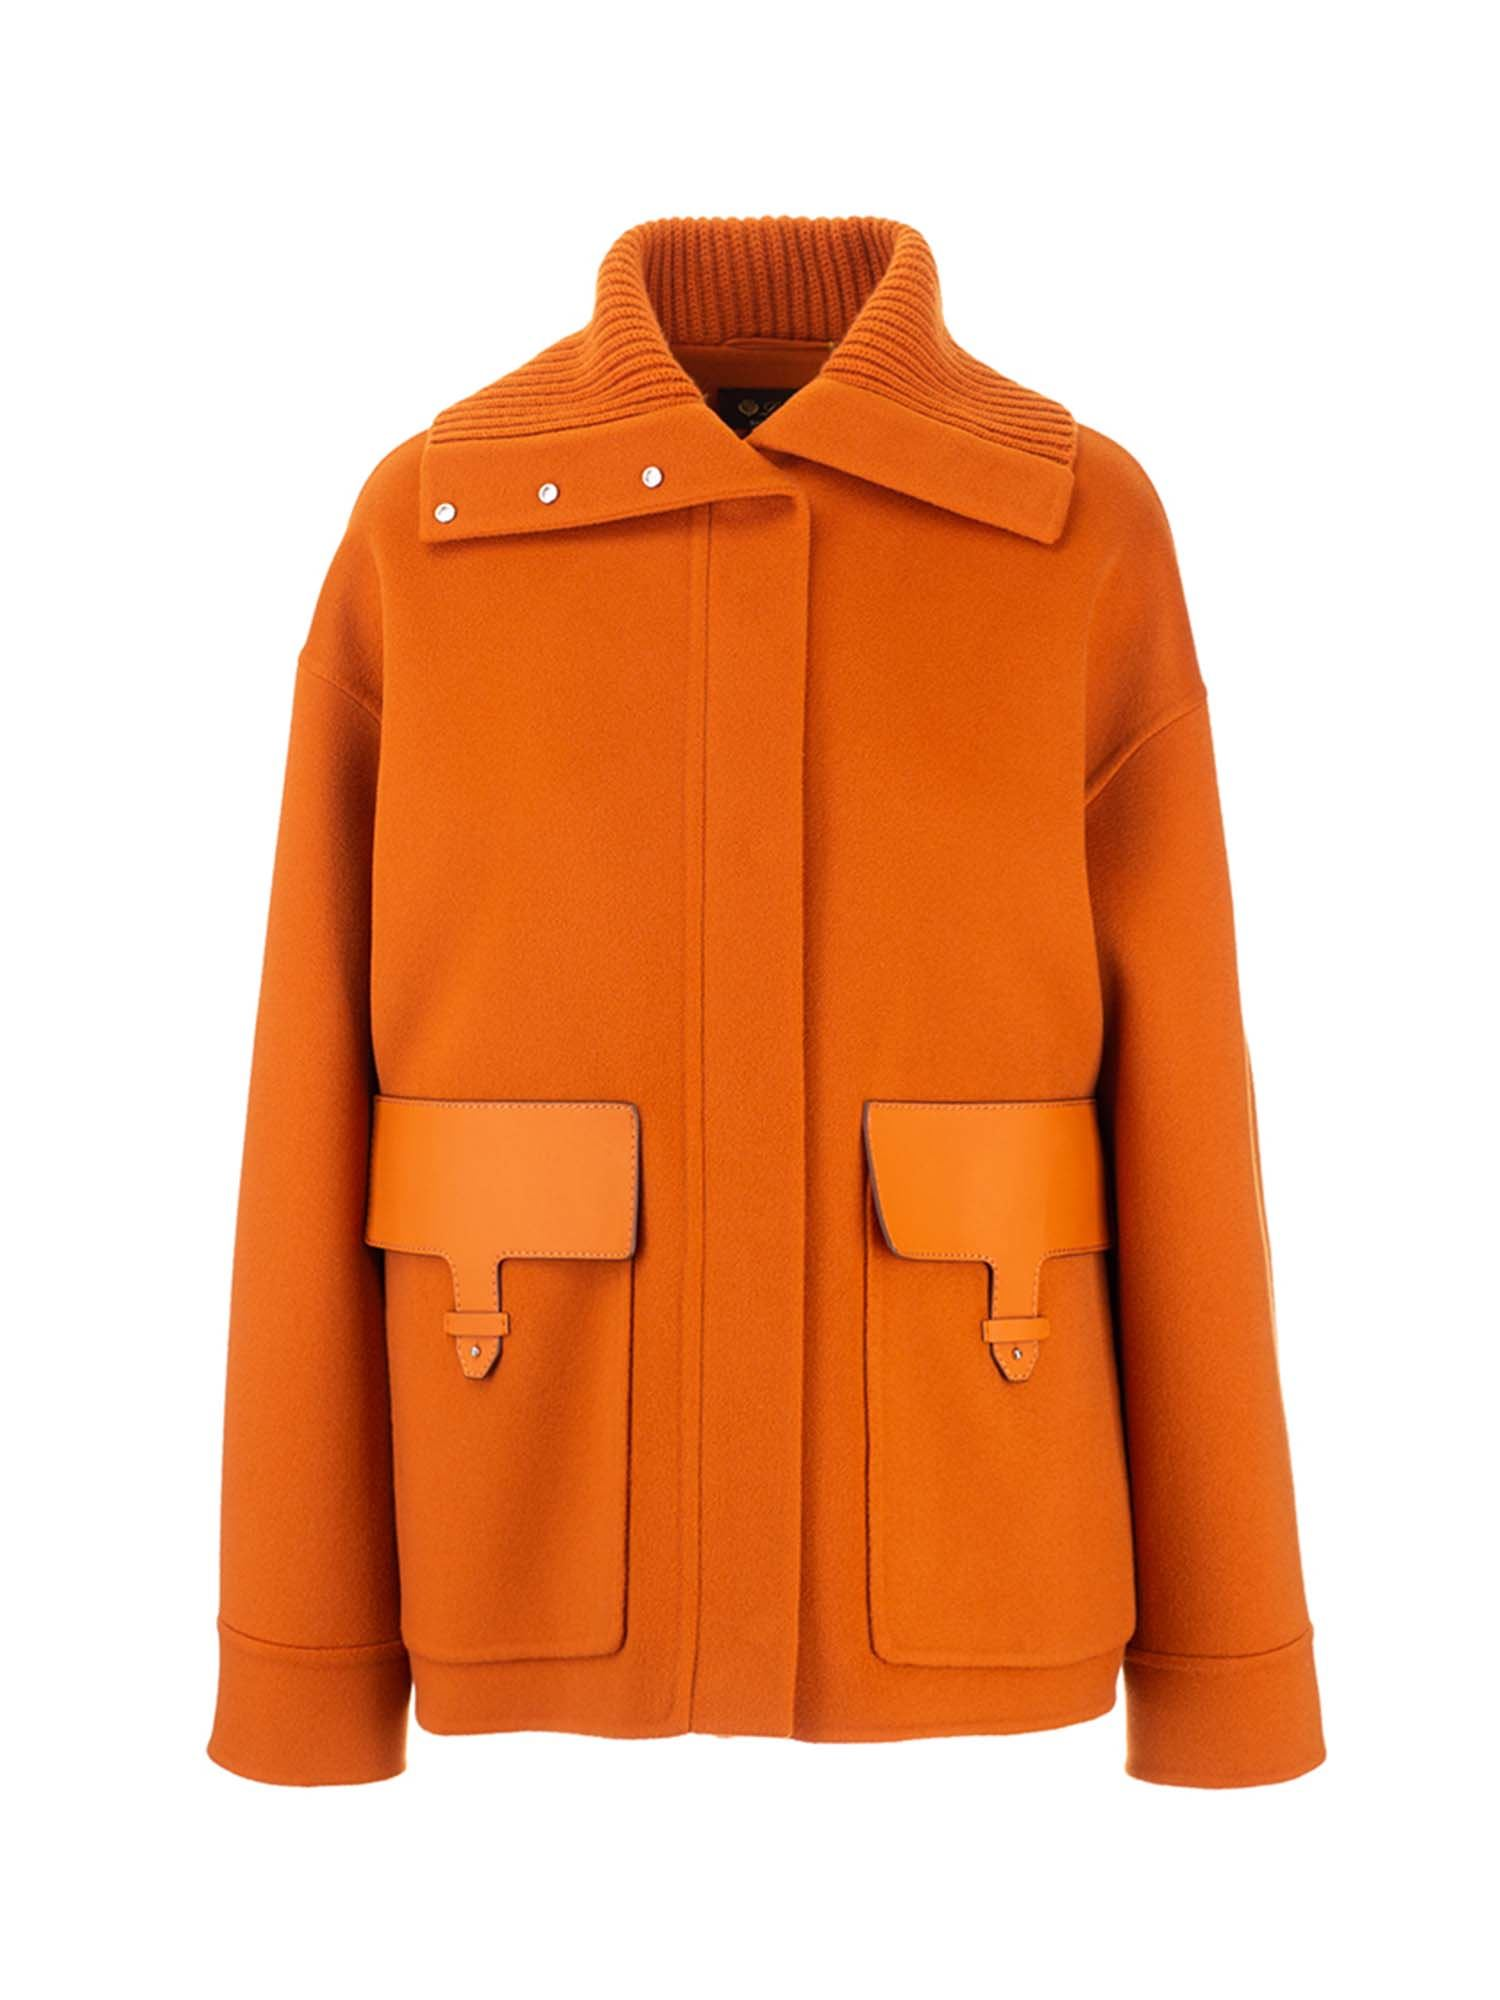 Loro Piana ELIJAH COAT IN ORANGE